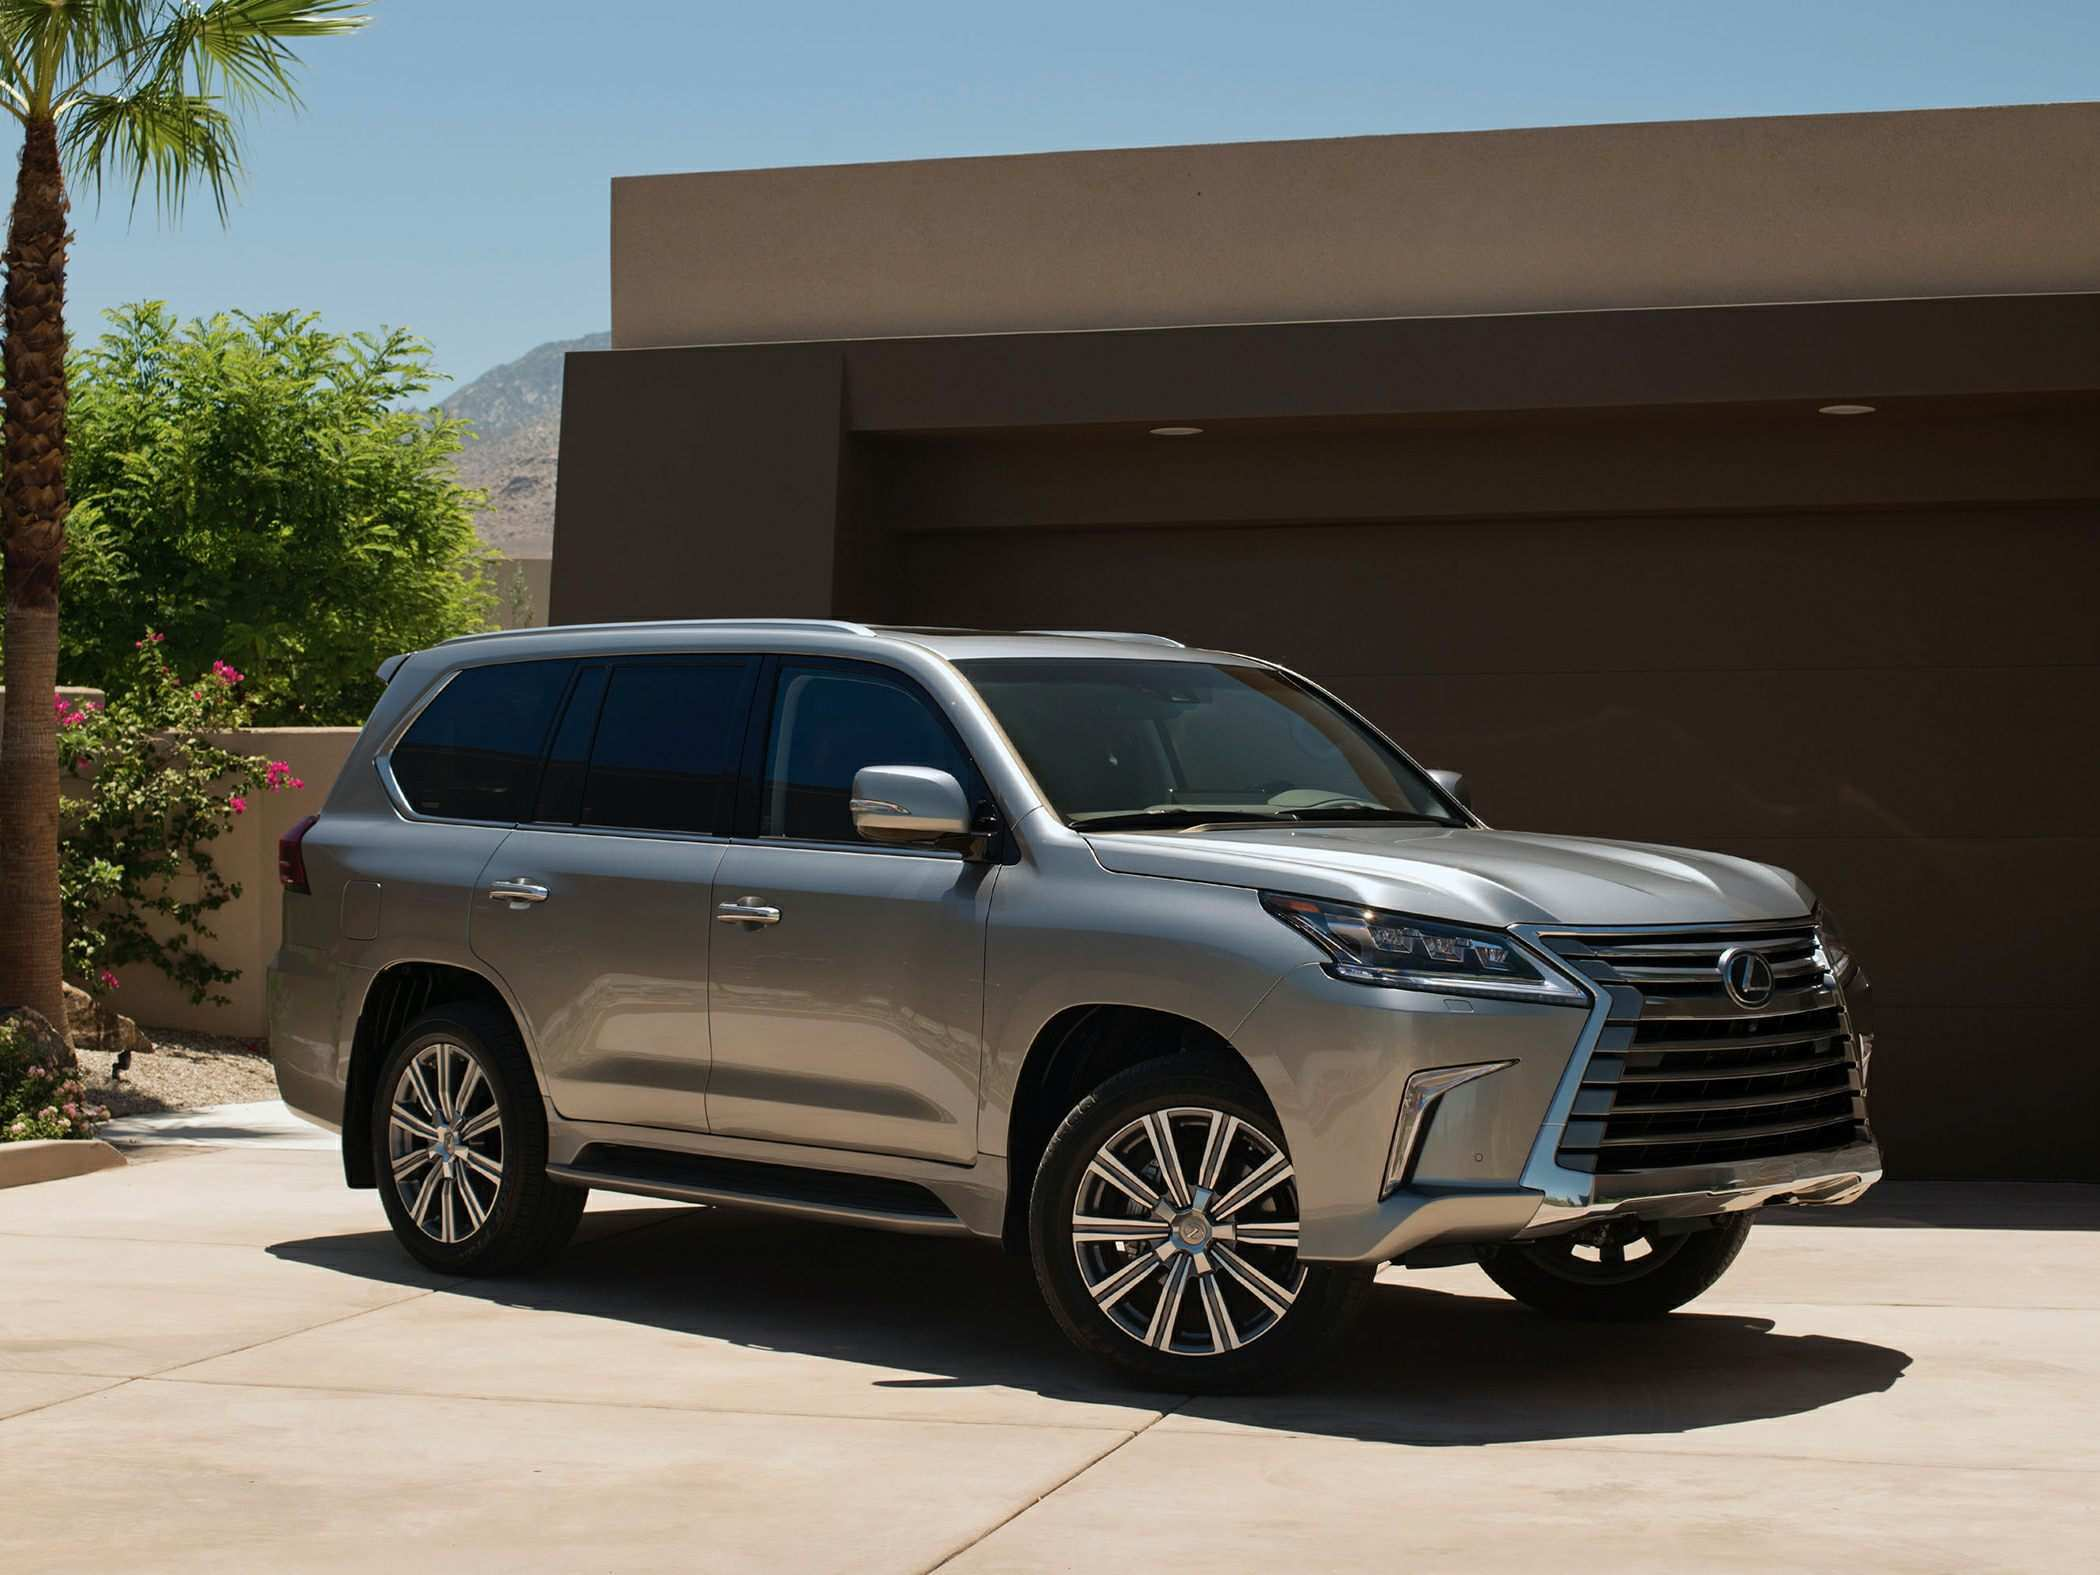 14 Gallery of The Lexus 2019 Lx Redesign And Price History with The Lexus 2019 Lx Redesign And Price